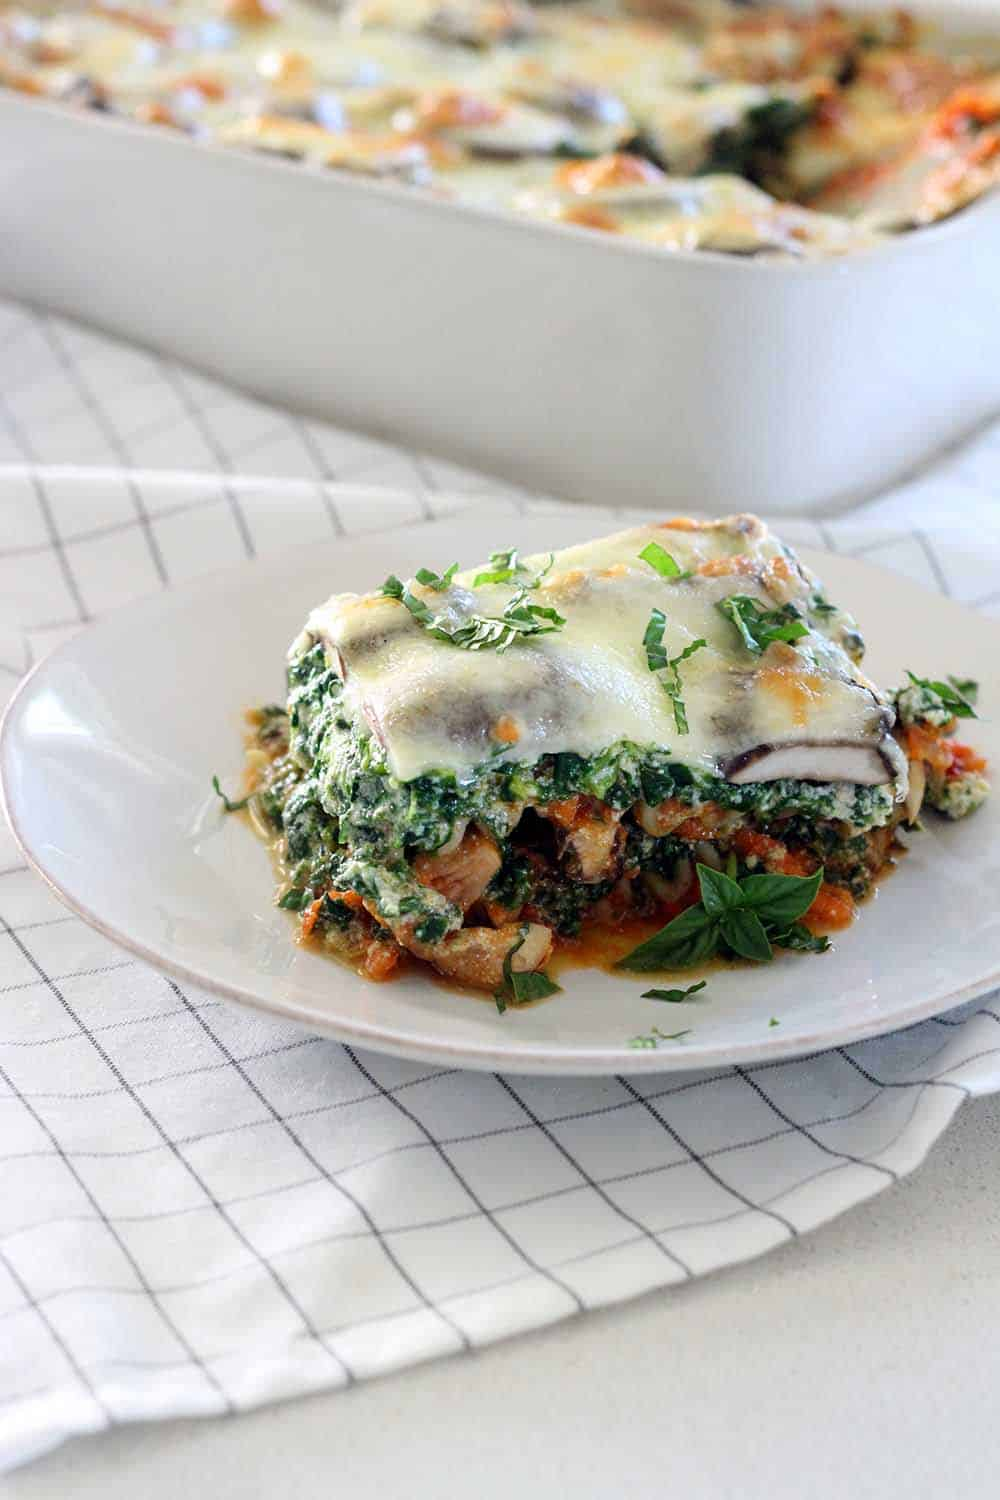 This vegetarian lasagna will satisfy even the most meat-loving carnivores. It's PACKED with good for you veggies, and it can be made well in advance and frozen for an easy make-ahead meal!